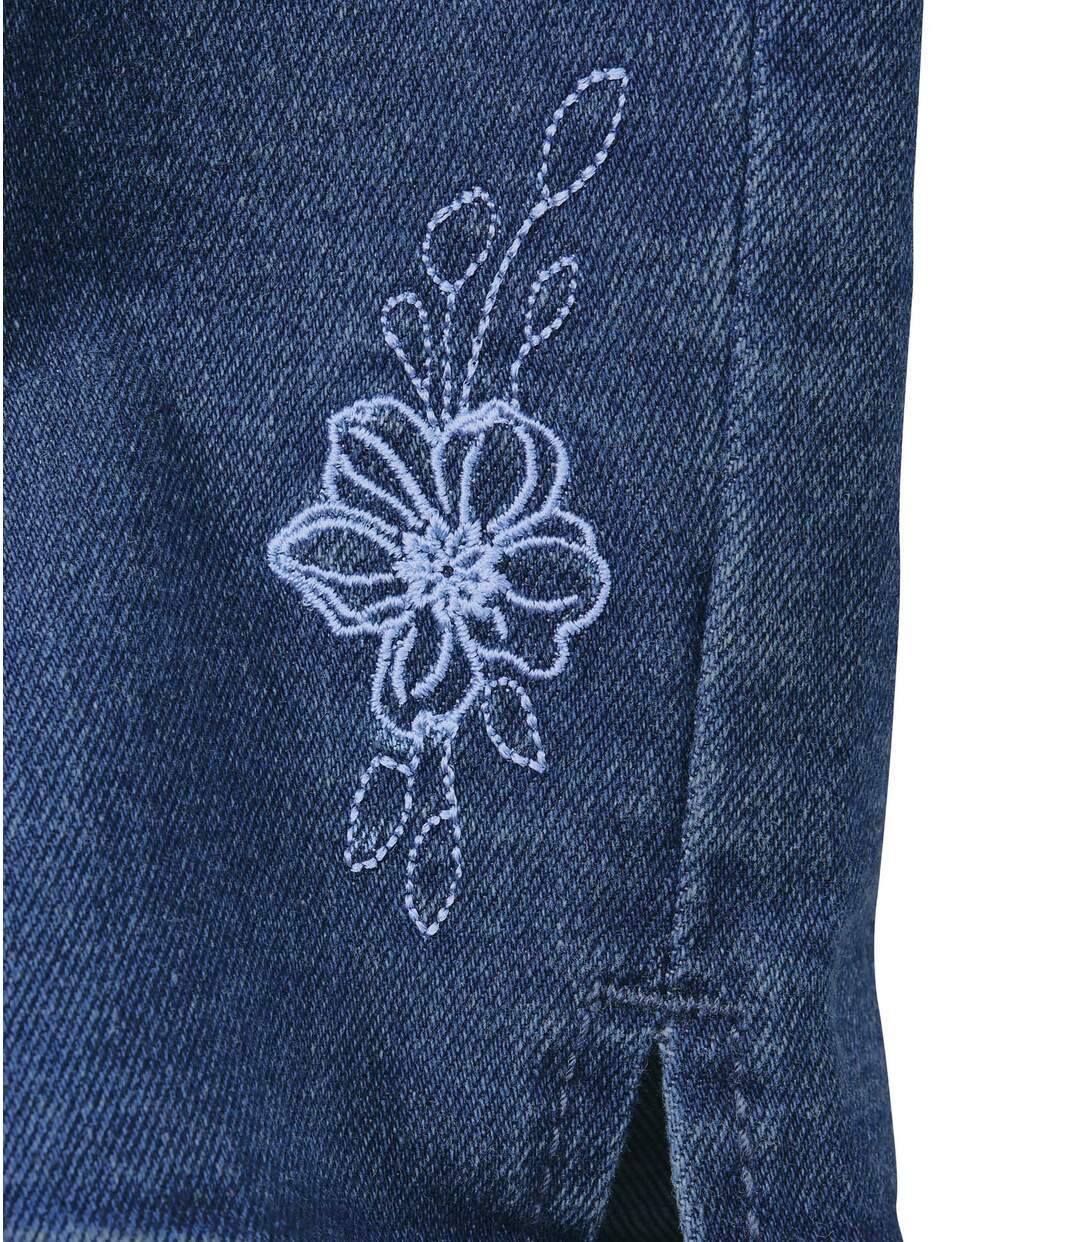 Women's Blue 7/8 Embroidered Stretch Jeans